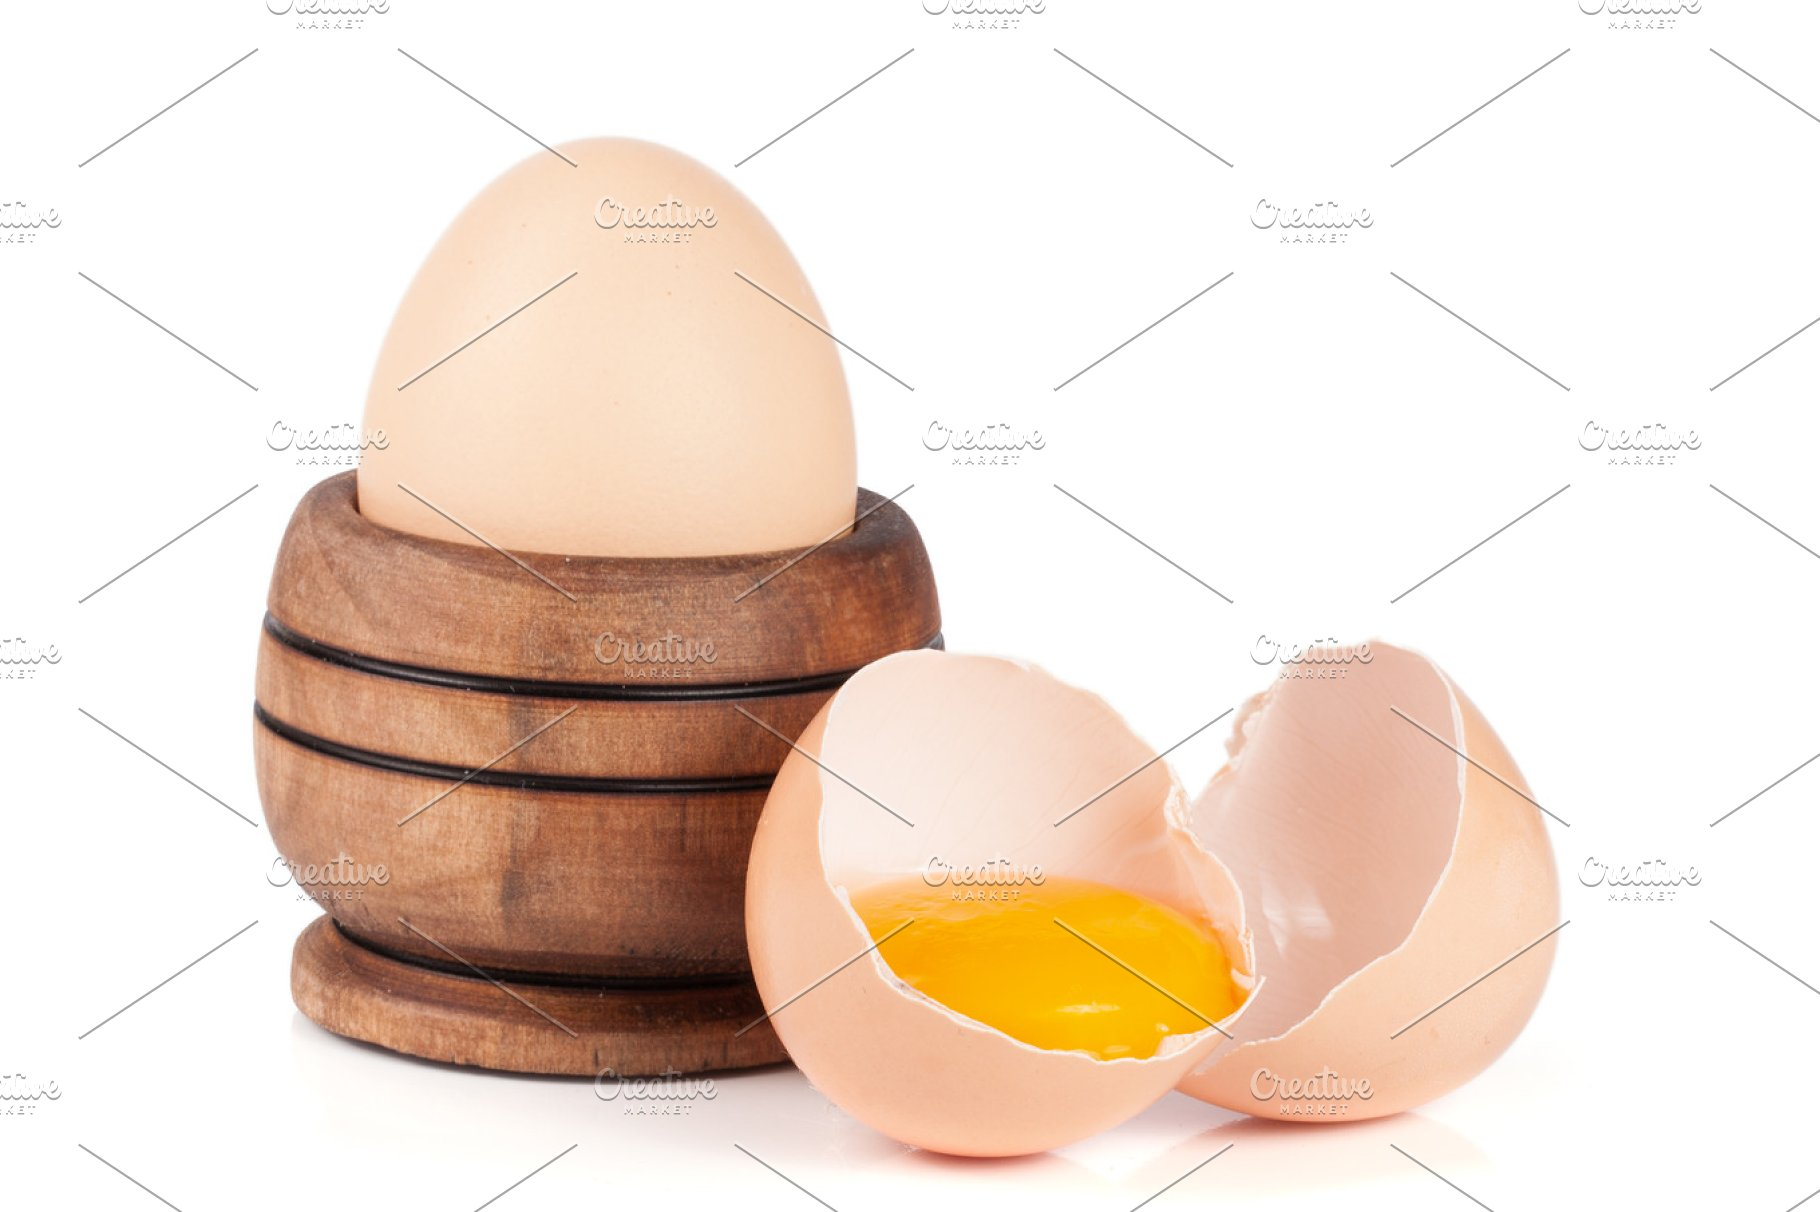 Whole Egg And Broken Egg In A Wooden Bowl Isolated On White Background